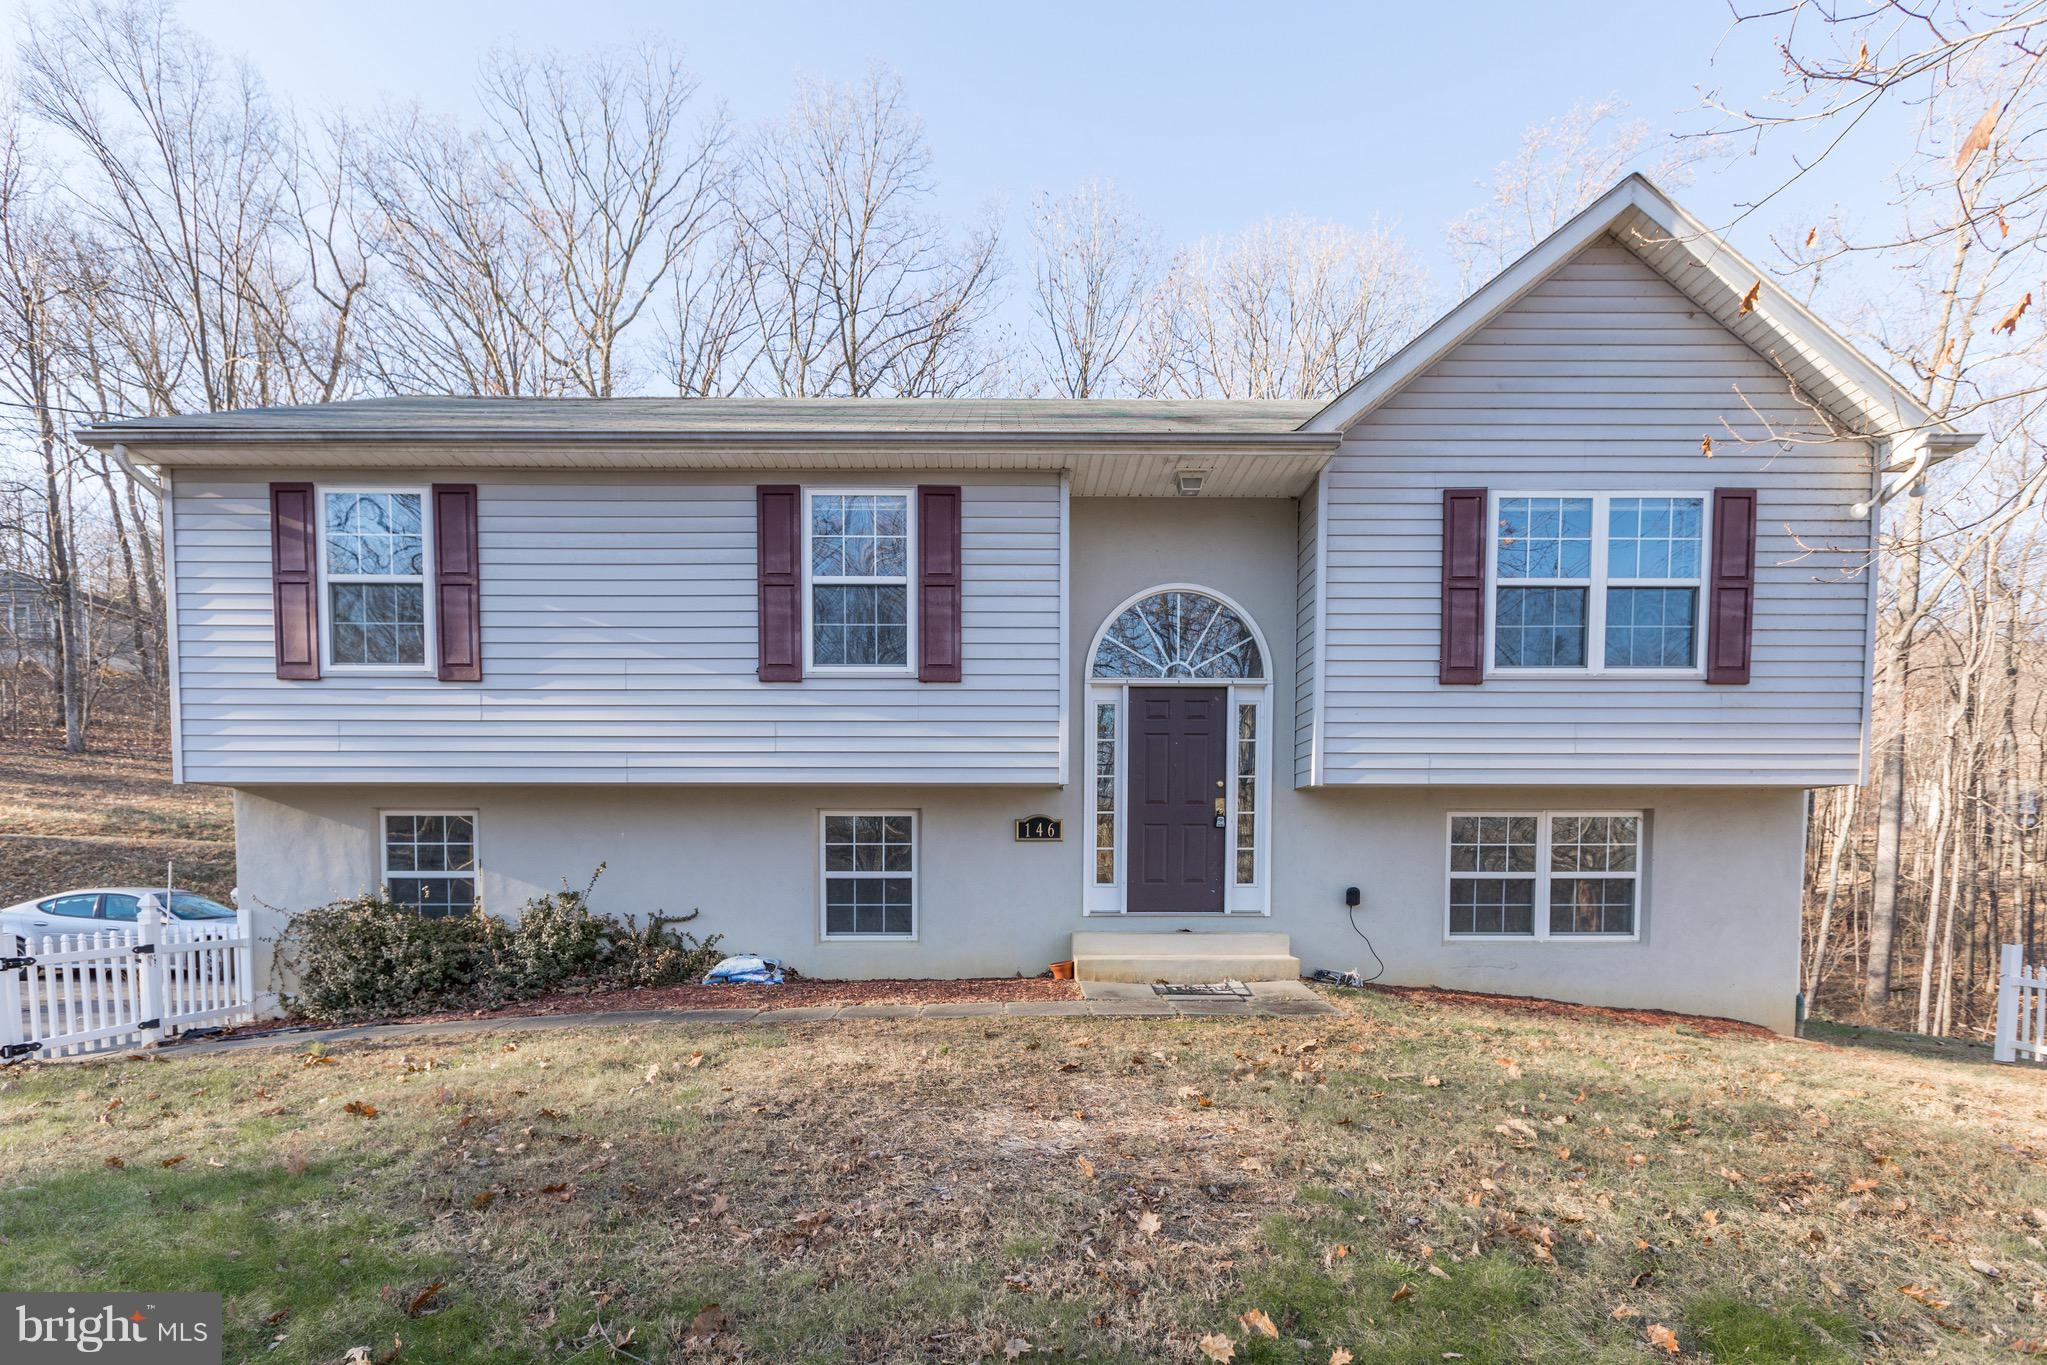 This spacious home situated on just over an acre surrounded by trees, makes for a quiet, comfortable